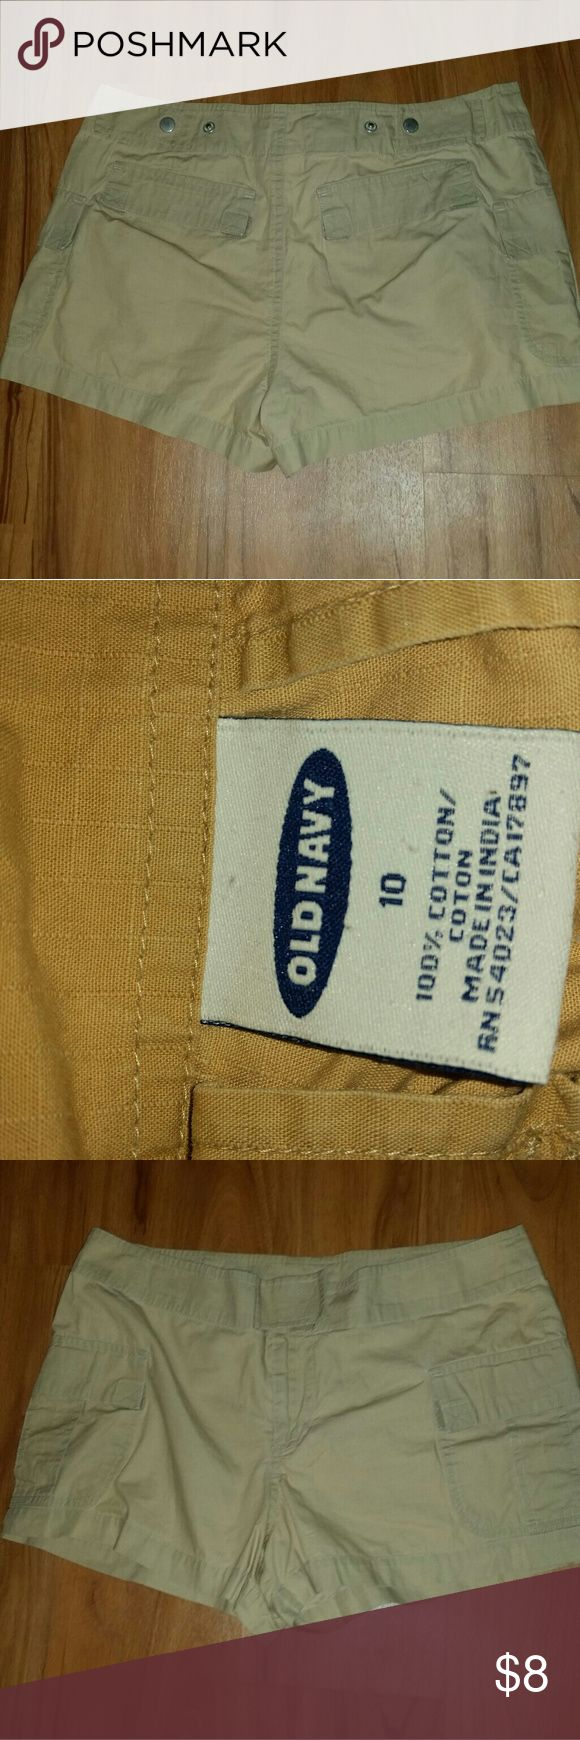 Old navy cargo short.  Very lightly worn. Comfortable shorts for summer-like weather. Old Navy Shorts Cargos